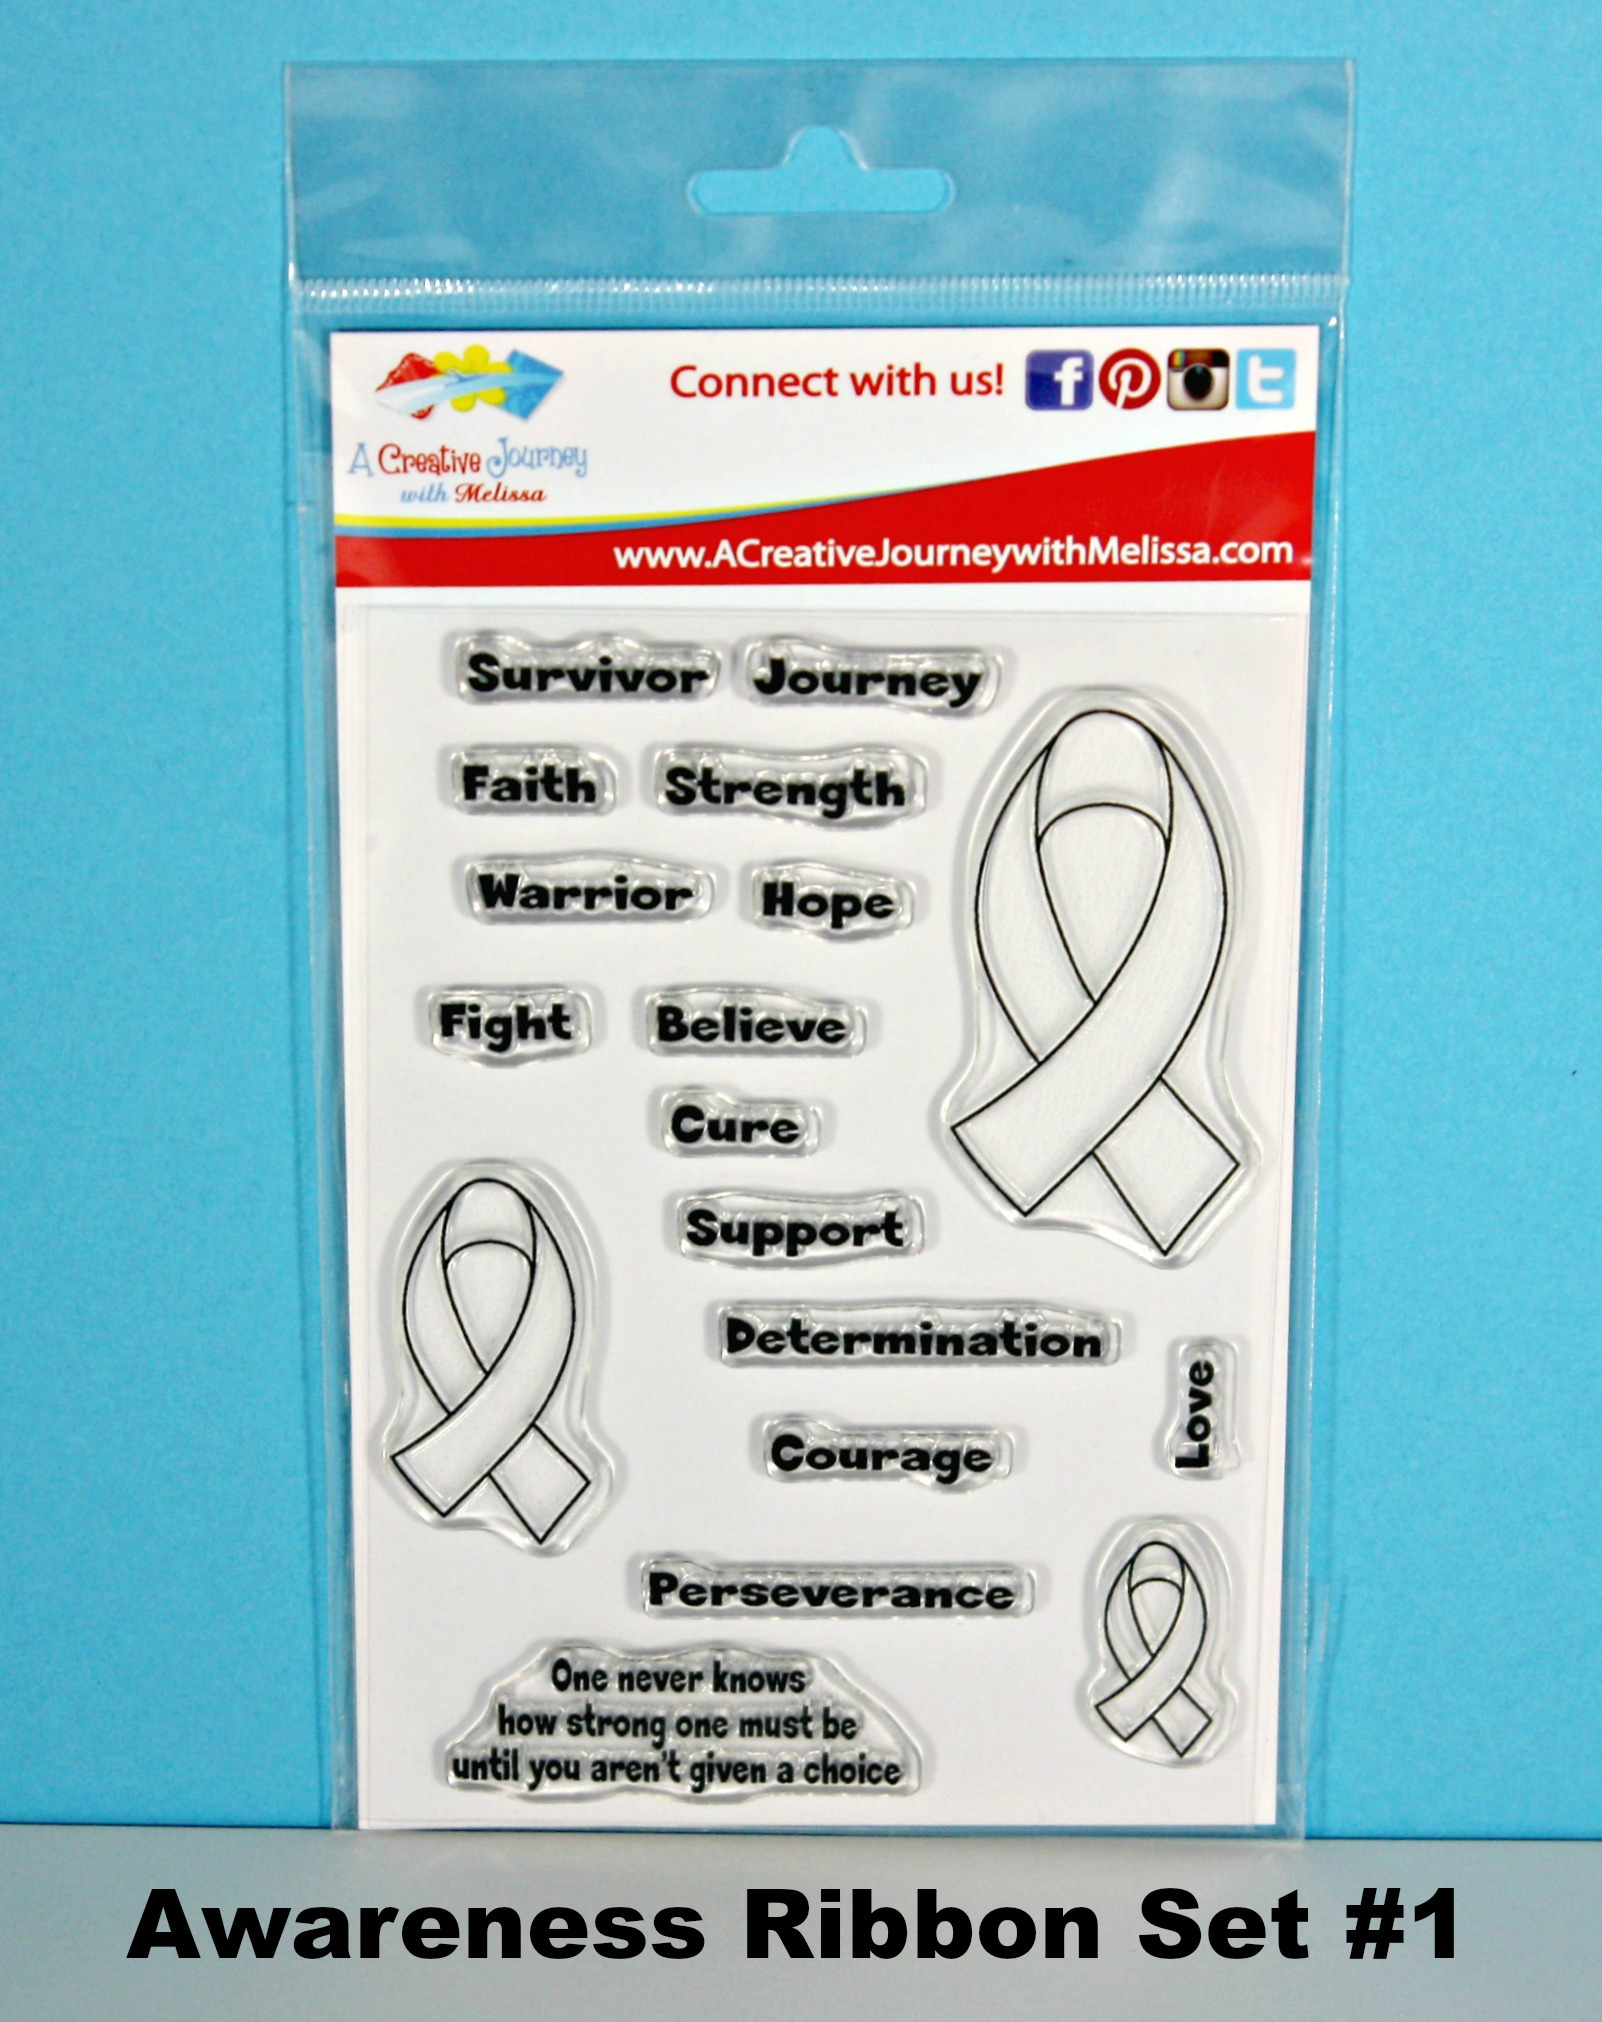 awareness-ribbon-set-1